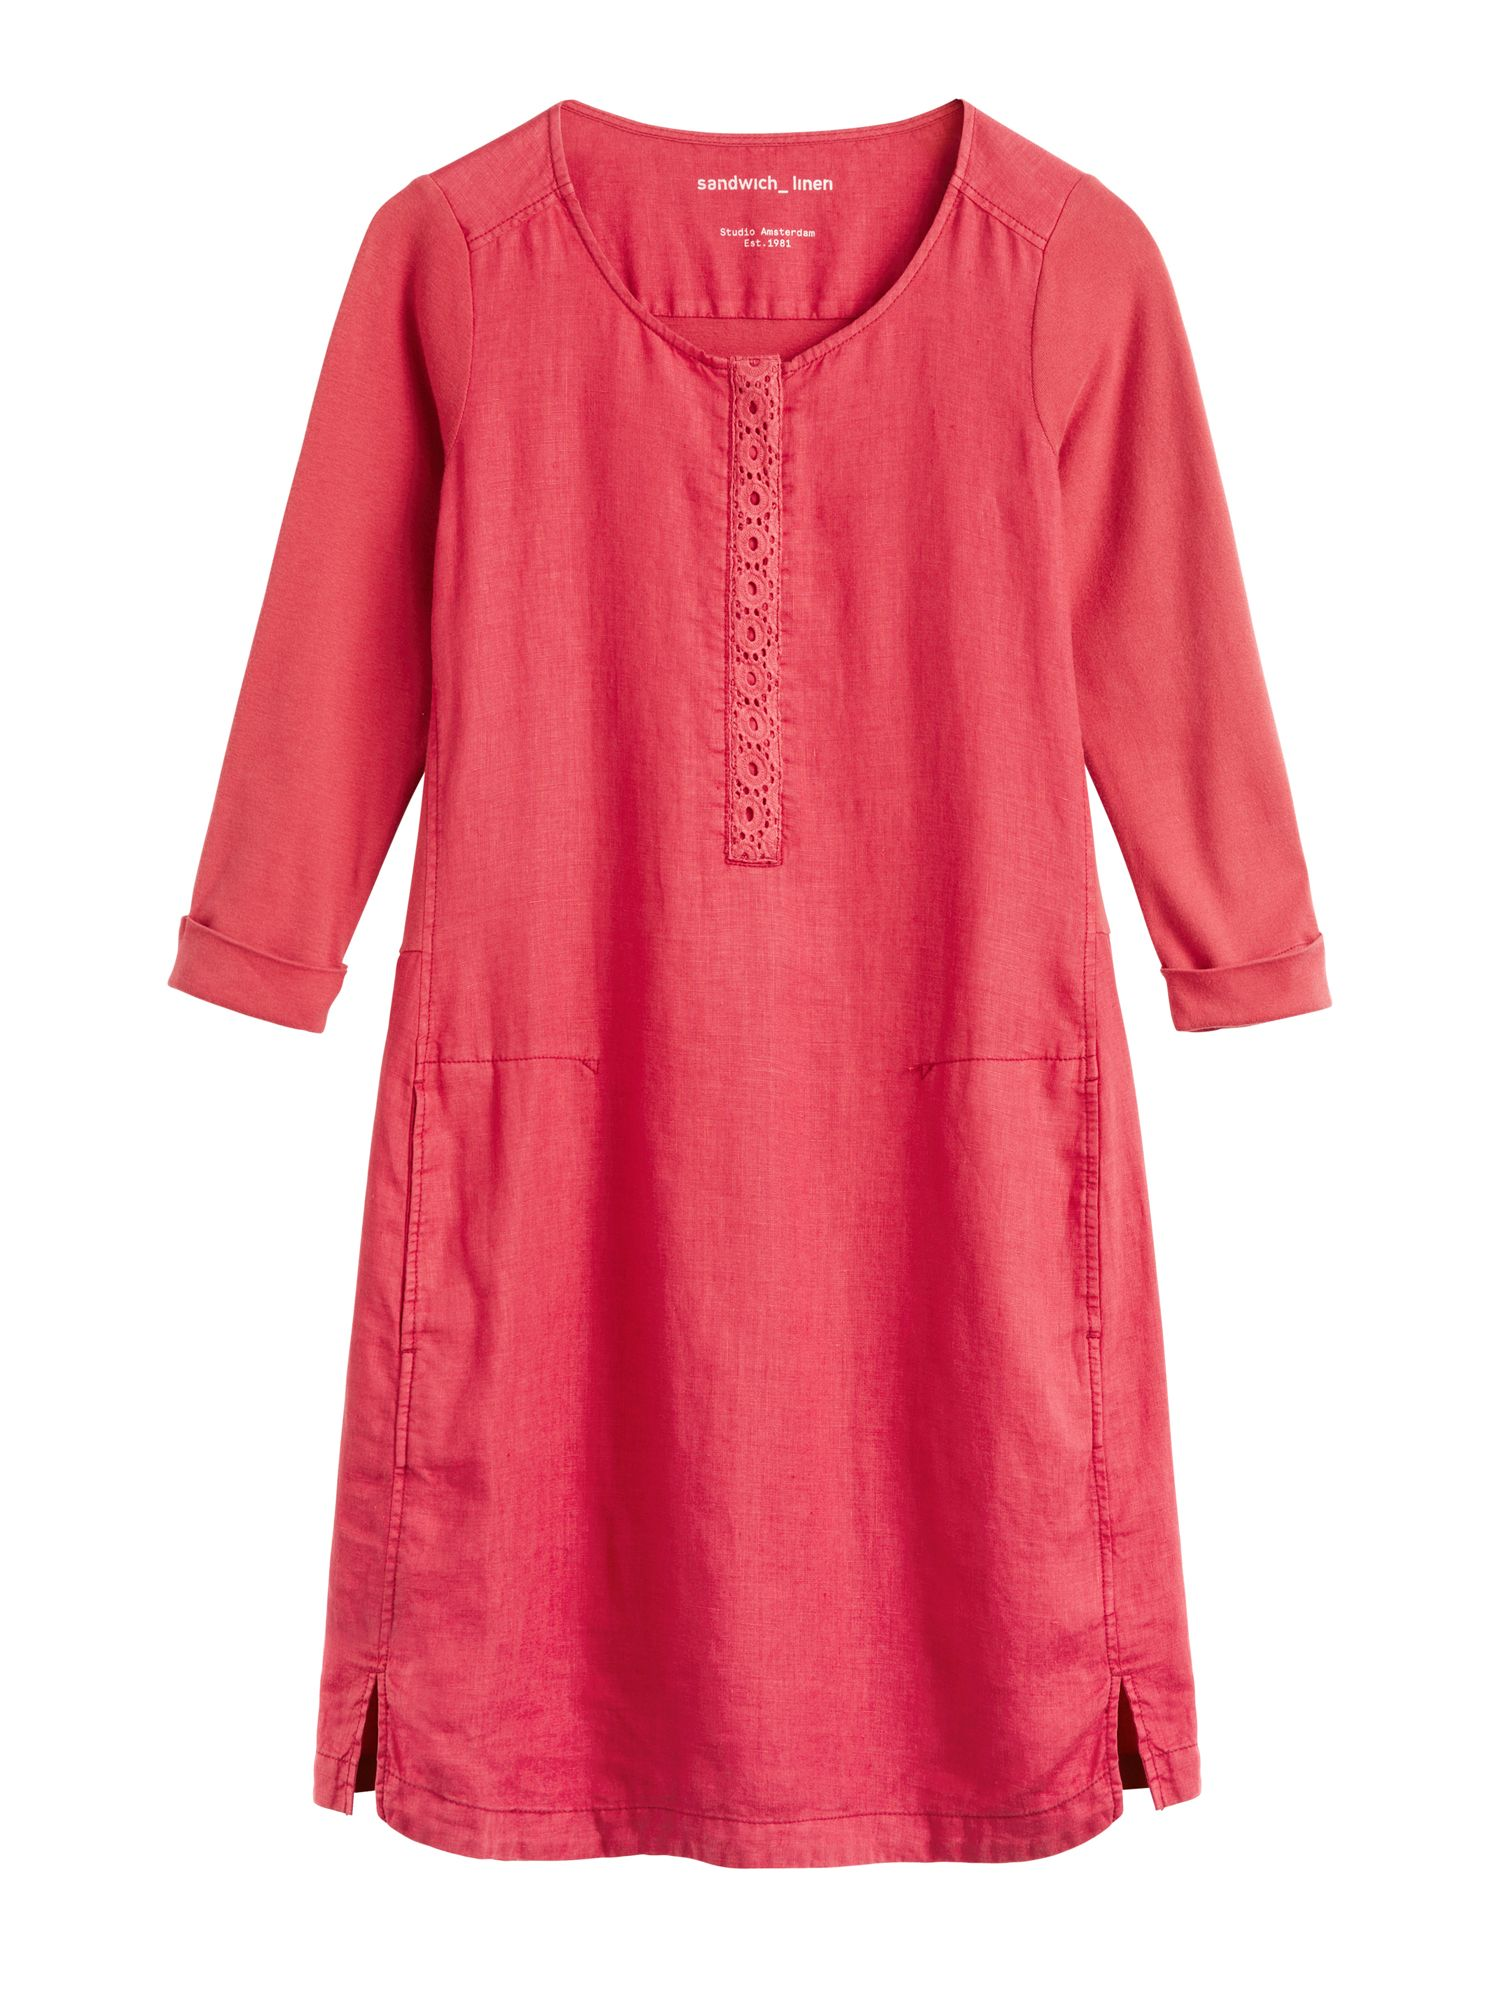 Sandwich Linen Dress With Broderie Anglaise Detail, Blood Red